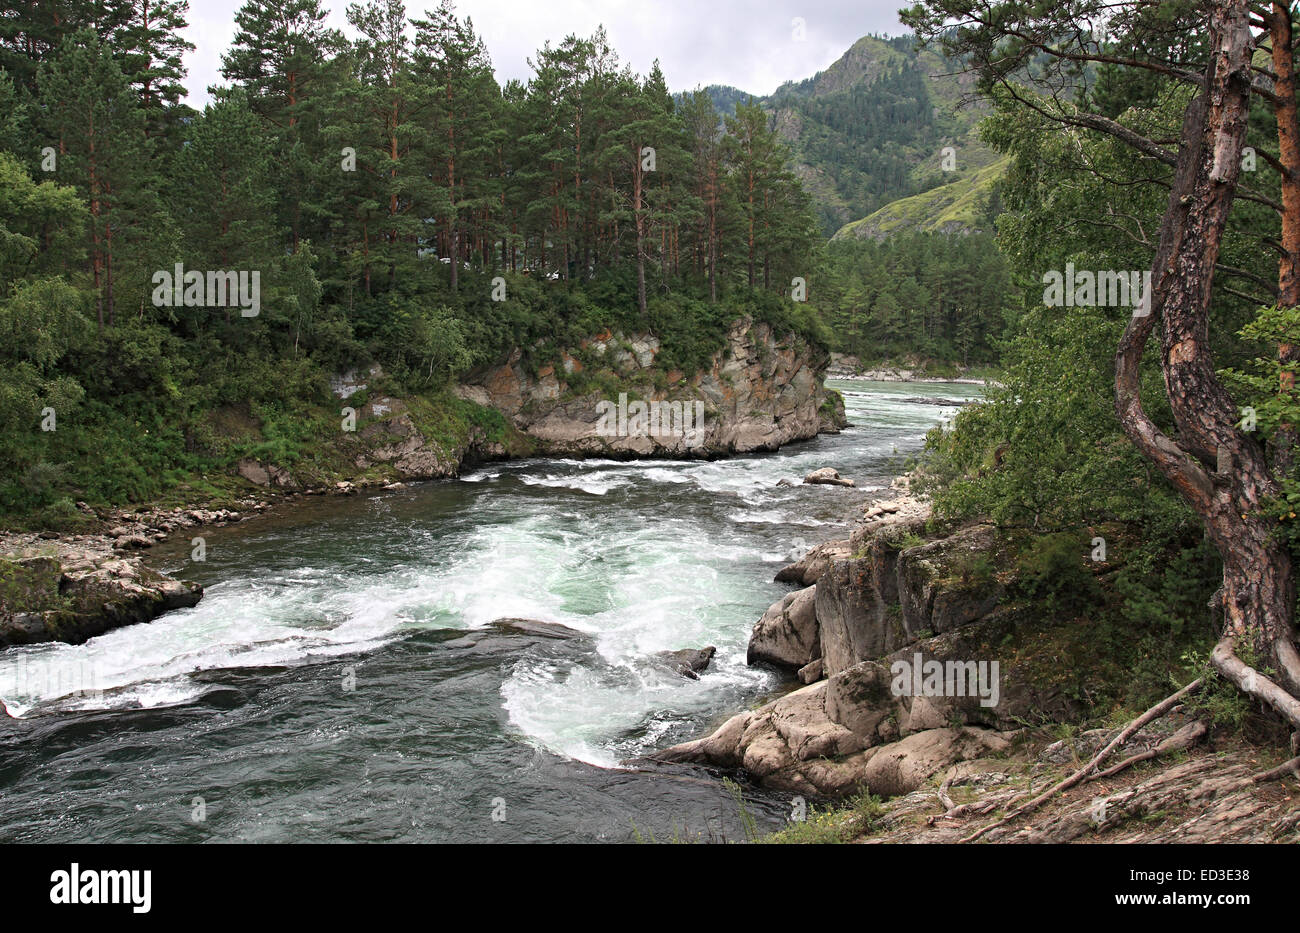 Mountain river of Chemal. - Stock Image